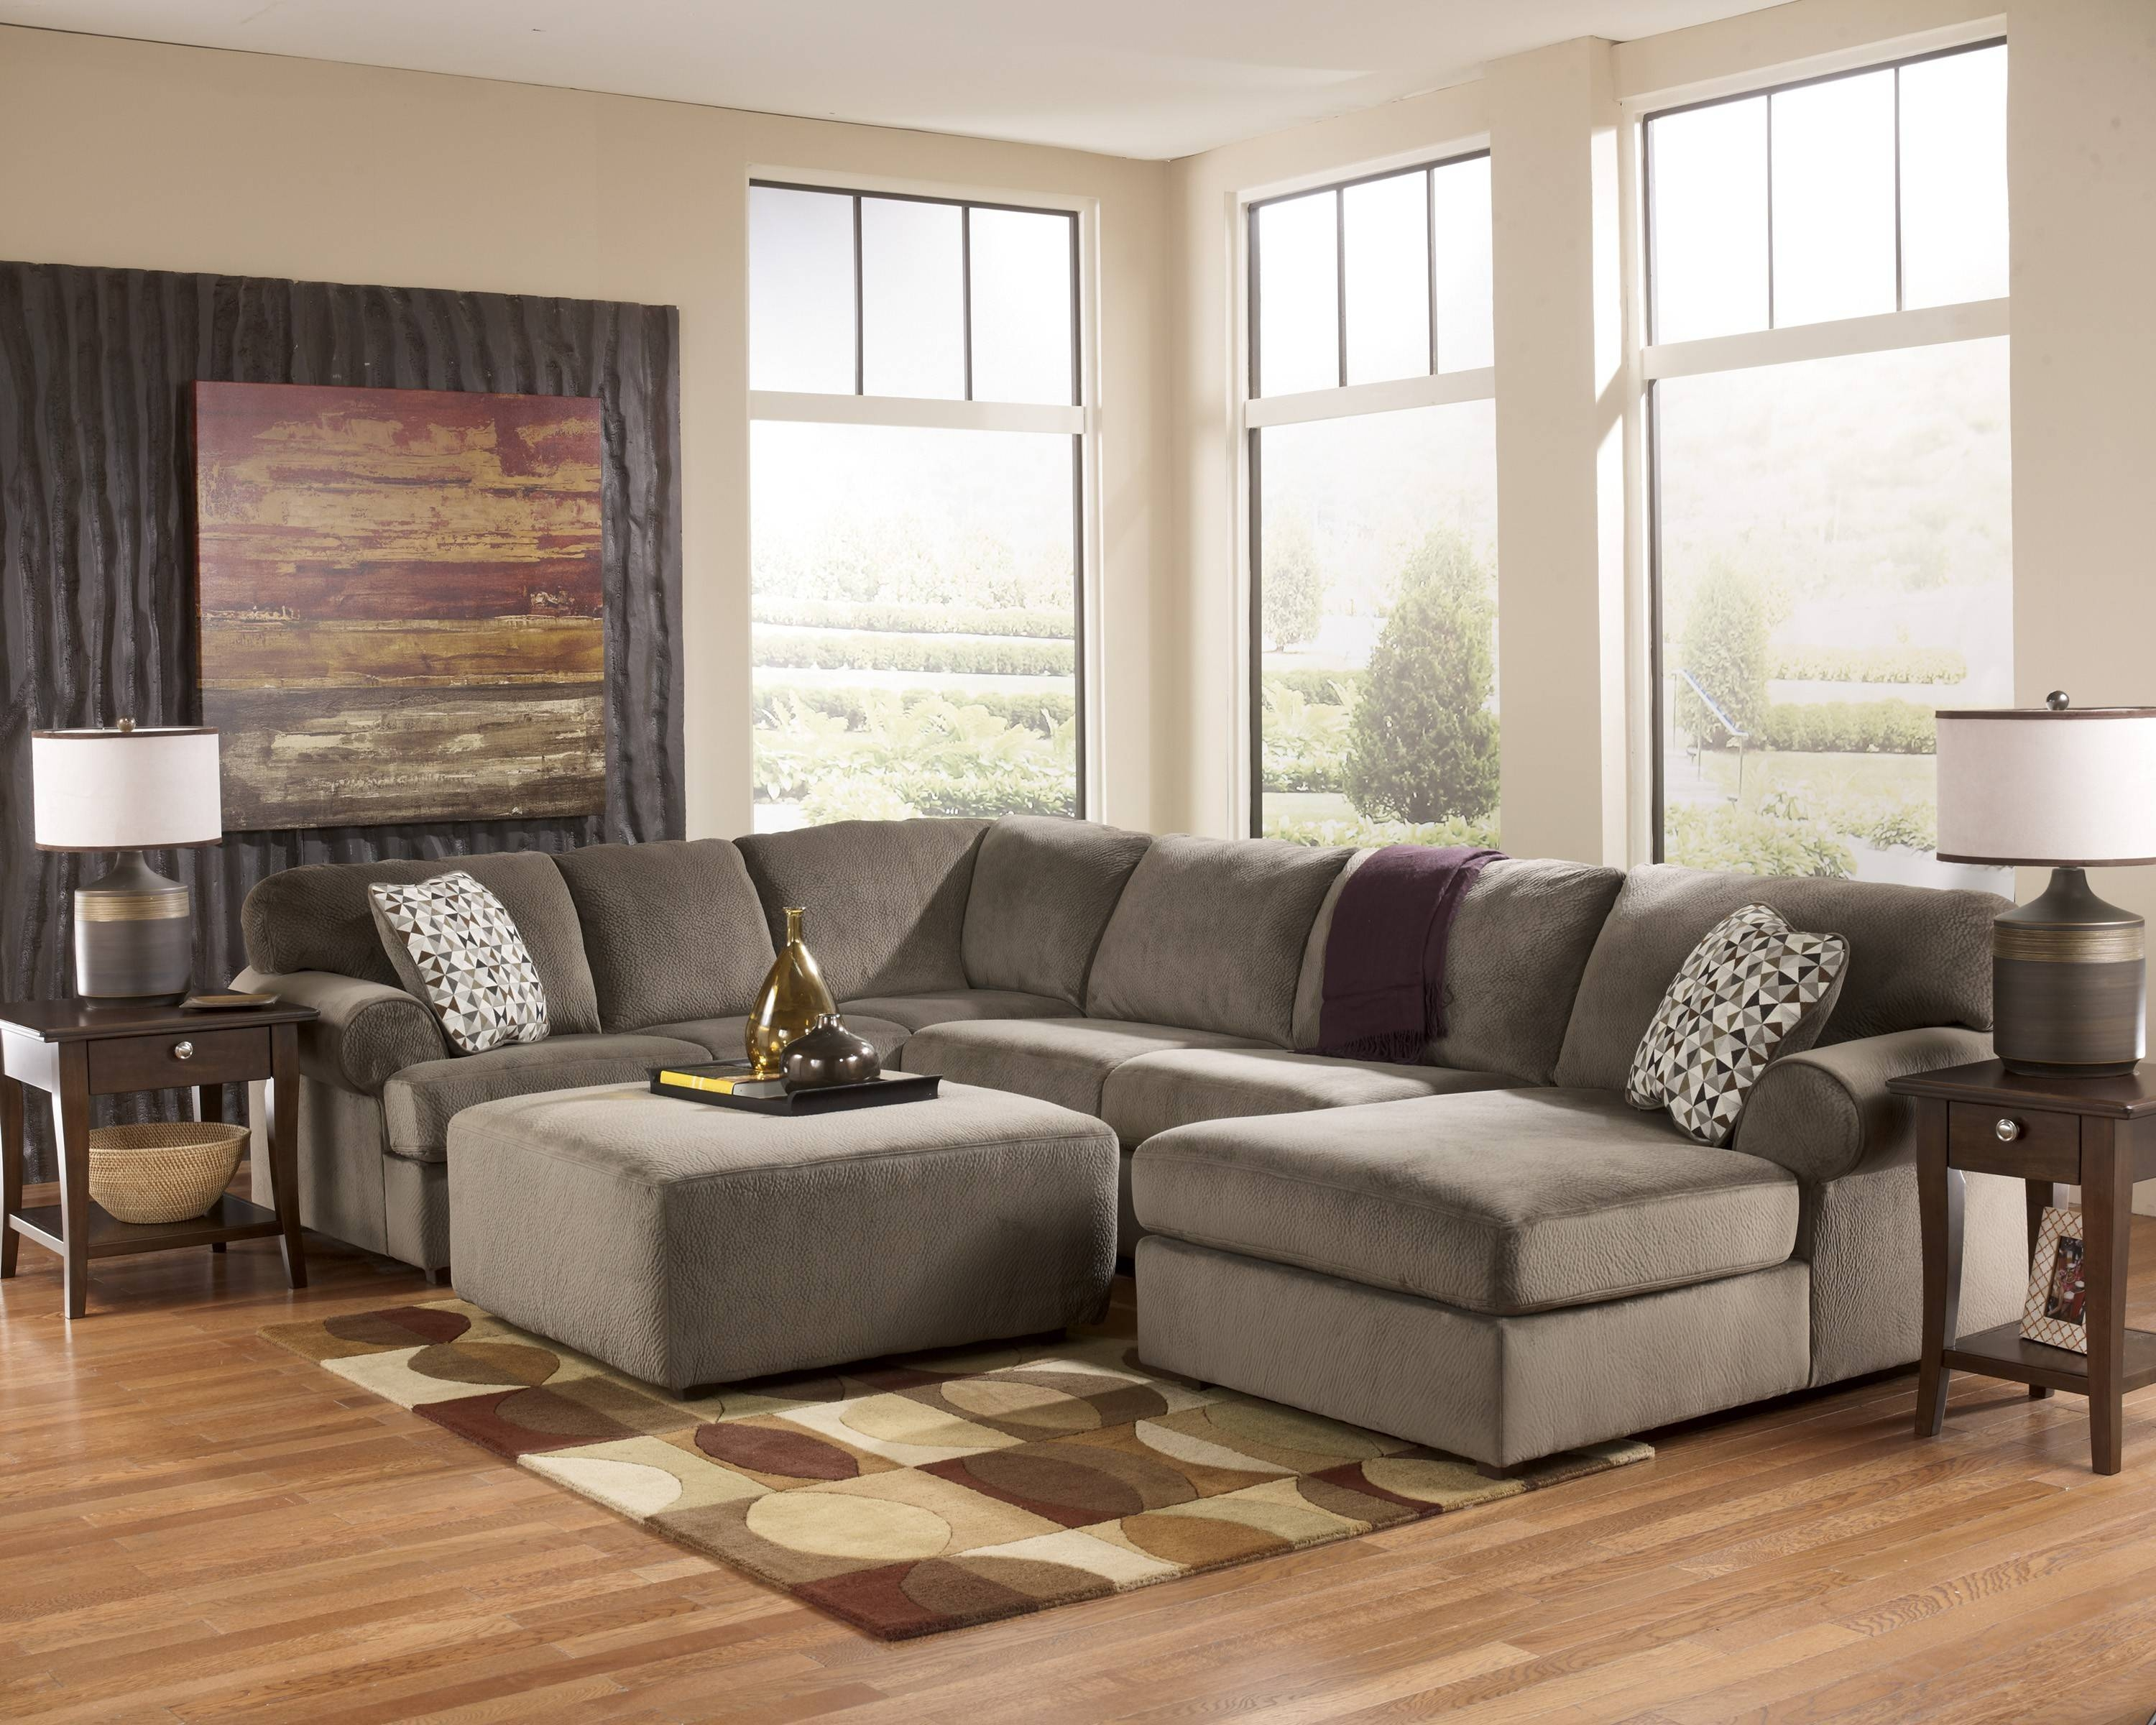 Sofas: Oversized Sofas That Are Ready For Hours Of Lounging Time with regard to Big Sofa Chairs (Image 27 of 30)